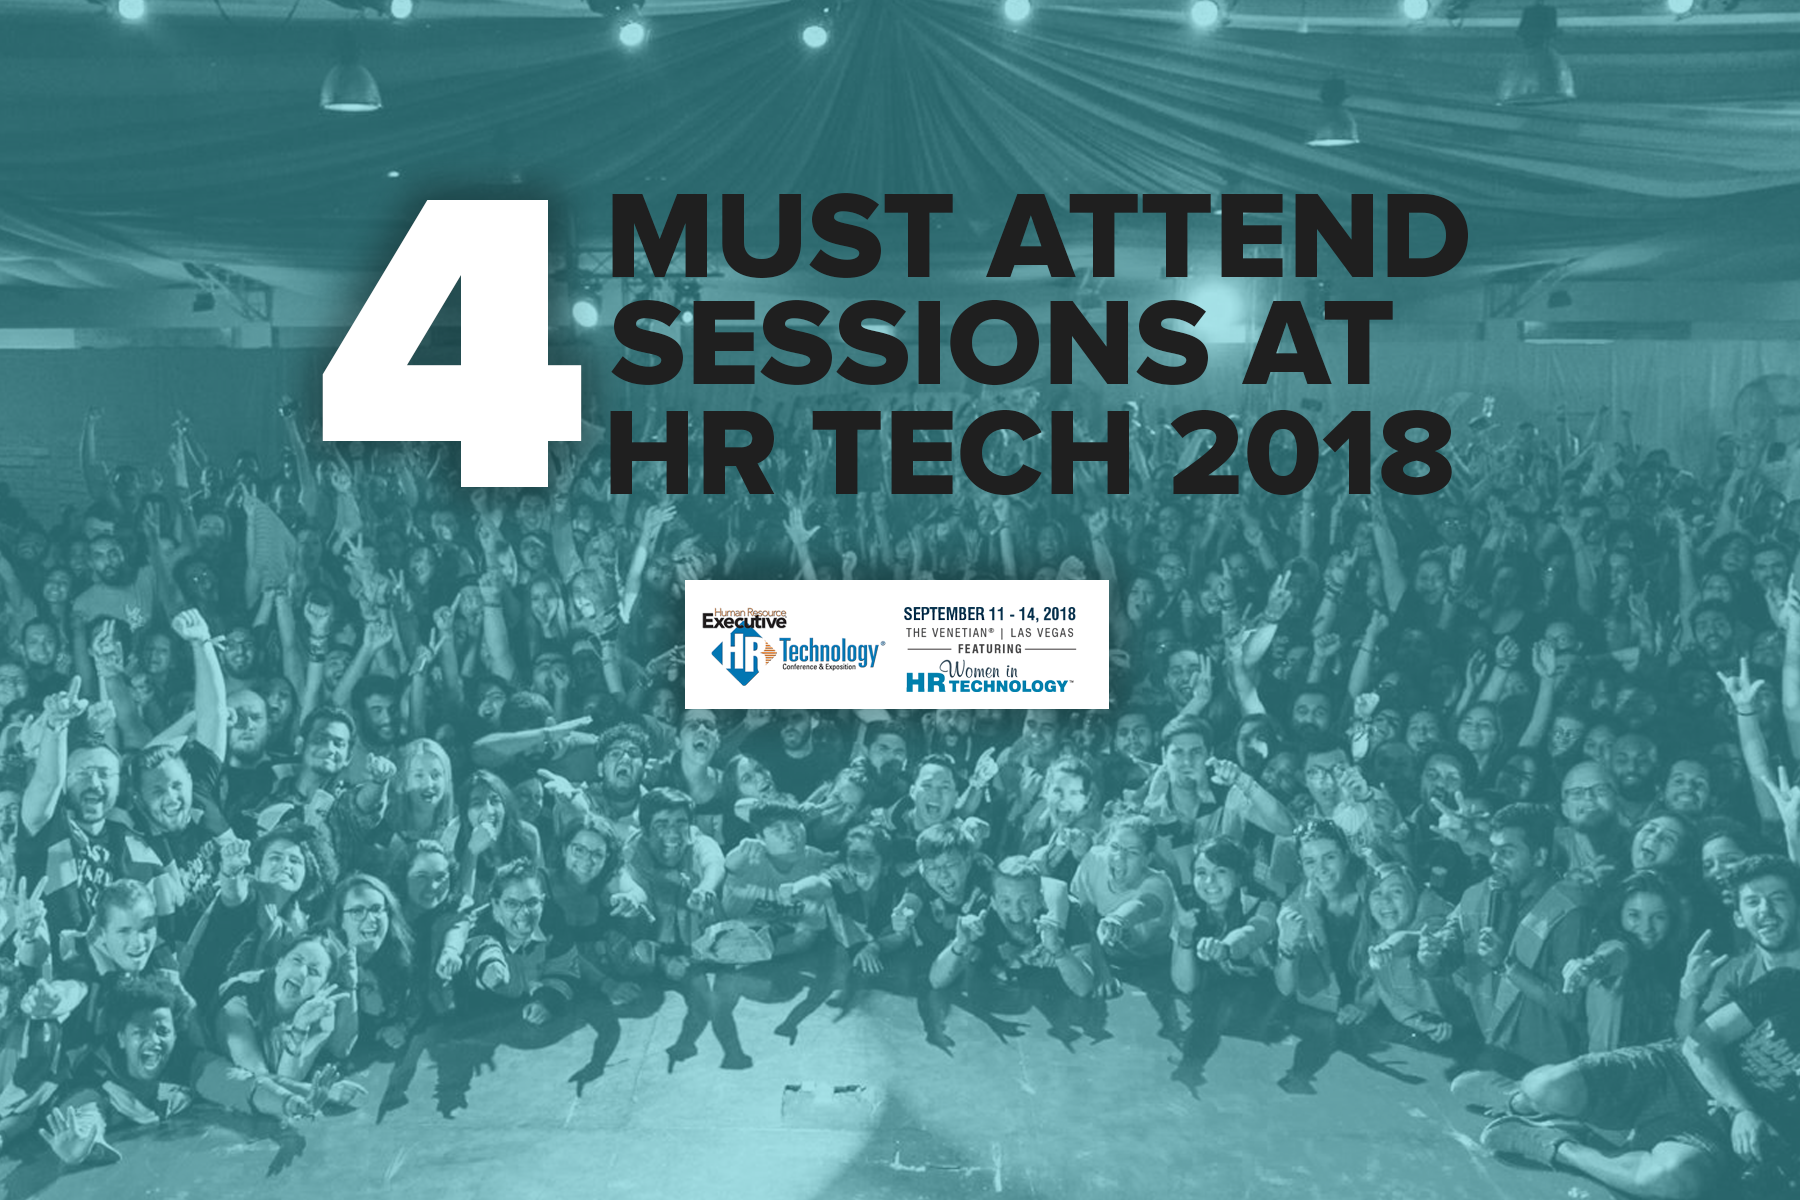 4 must attend sessions at HR-Tech 2018